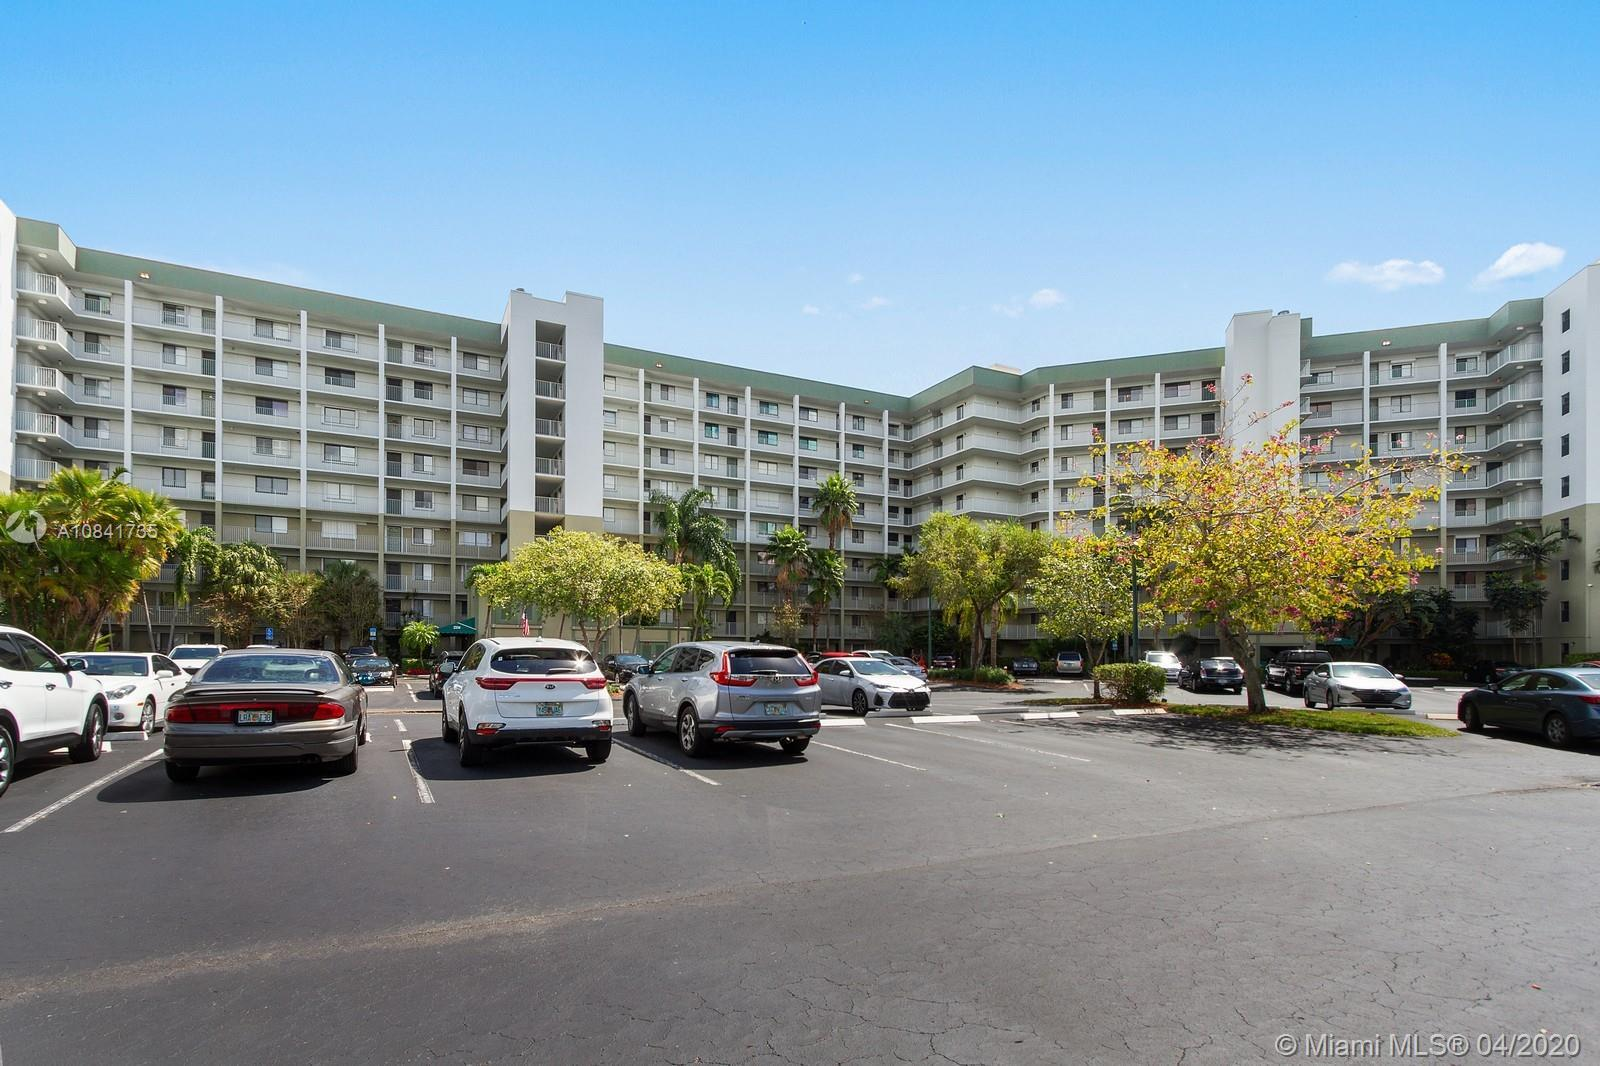 Beautiful and charming describes this 2 bedroom/2 bath Penthouse Condo, located in the most desirabl